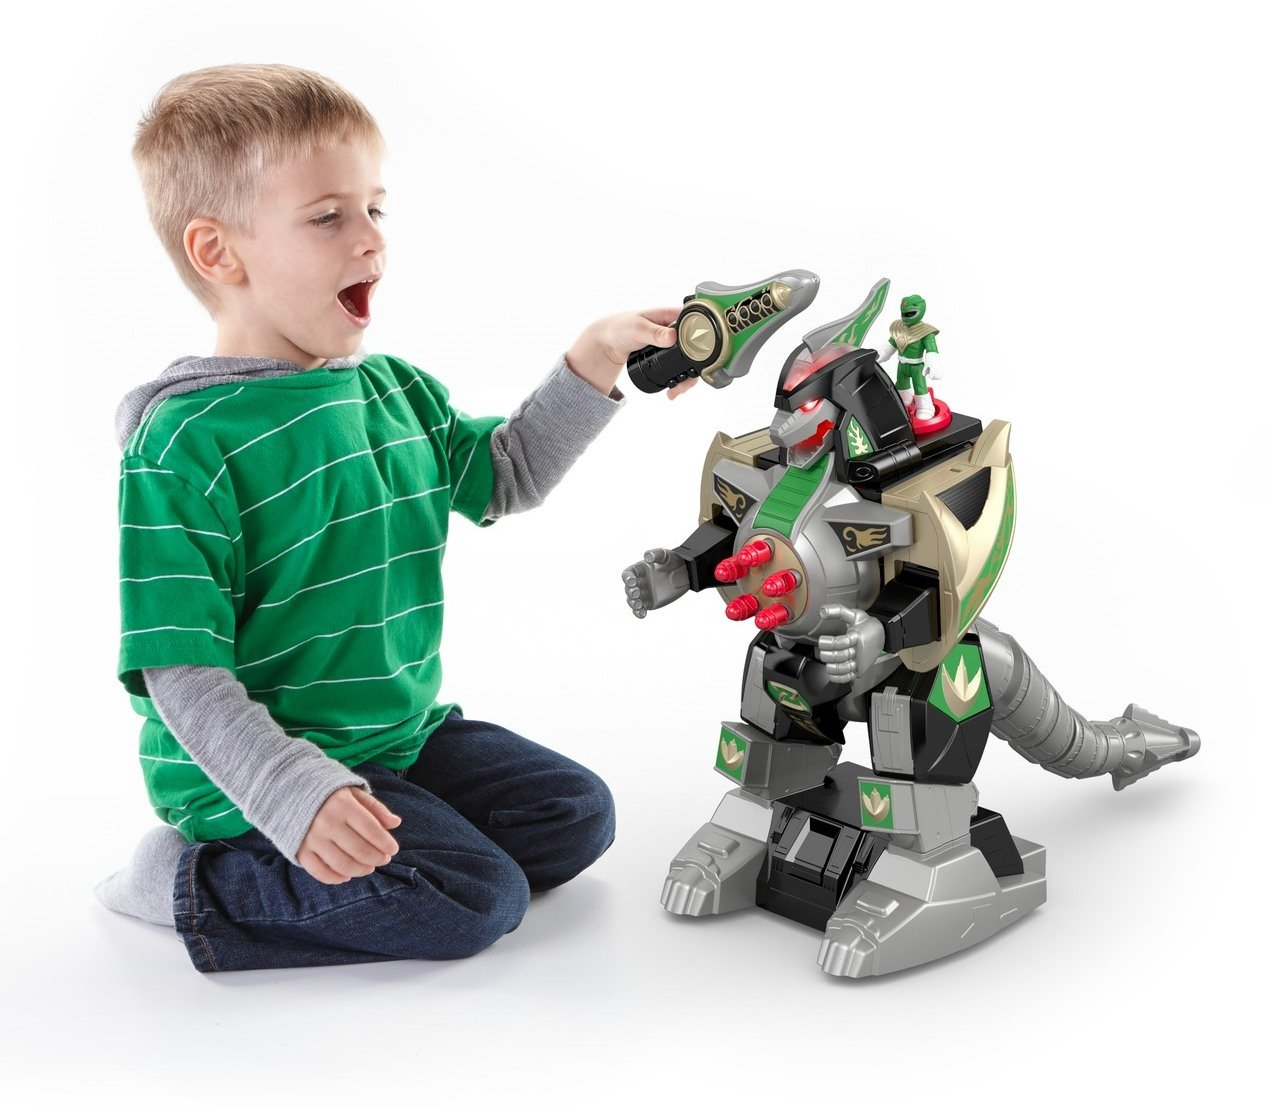 Fisher-Price Imaginext Power Rangers Green-Ranger and Dragonzord R/C Vehicle Mattel DFX51